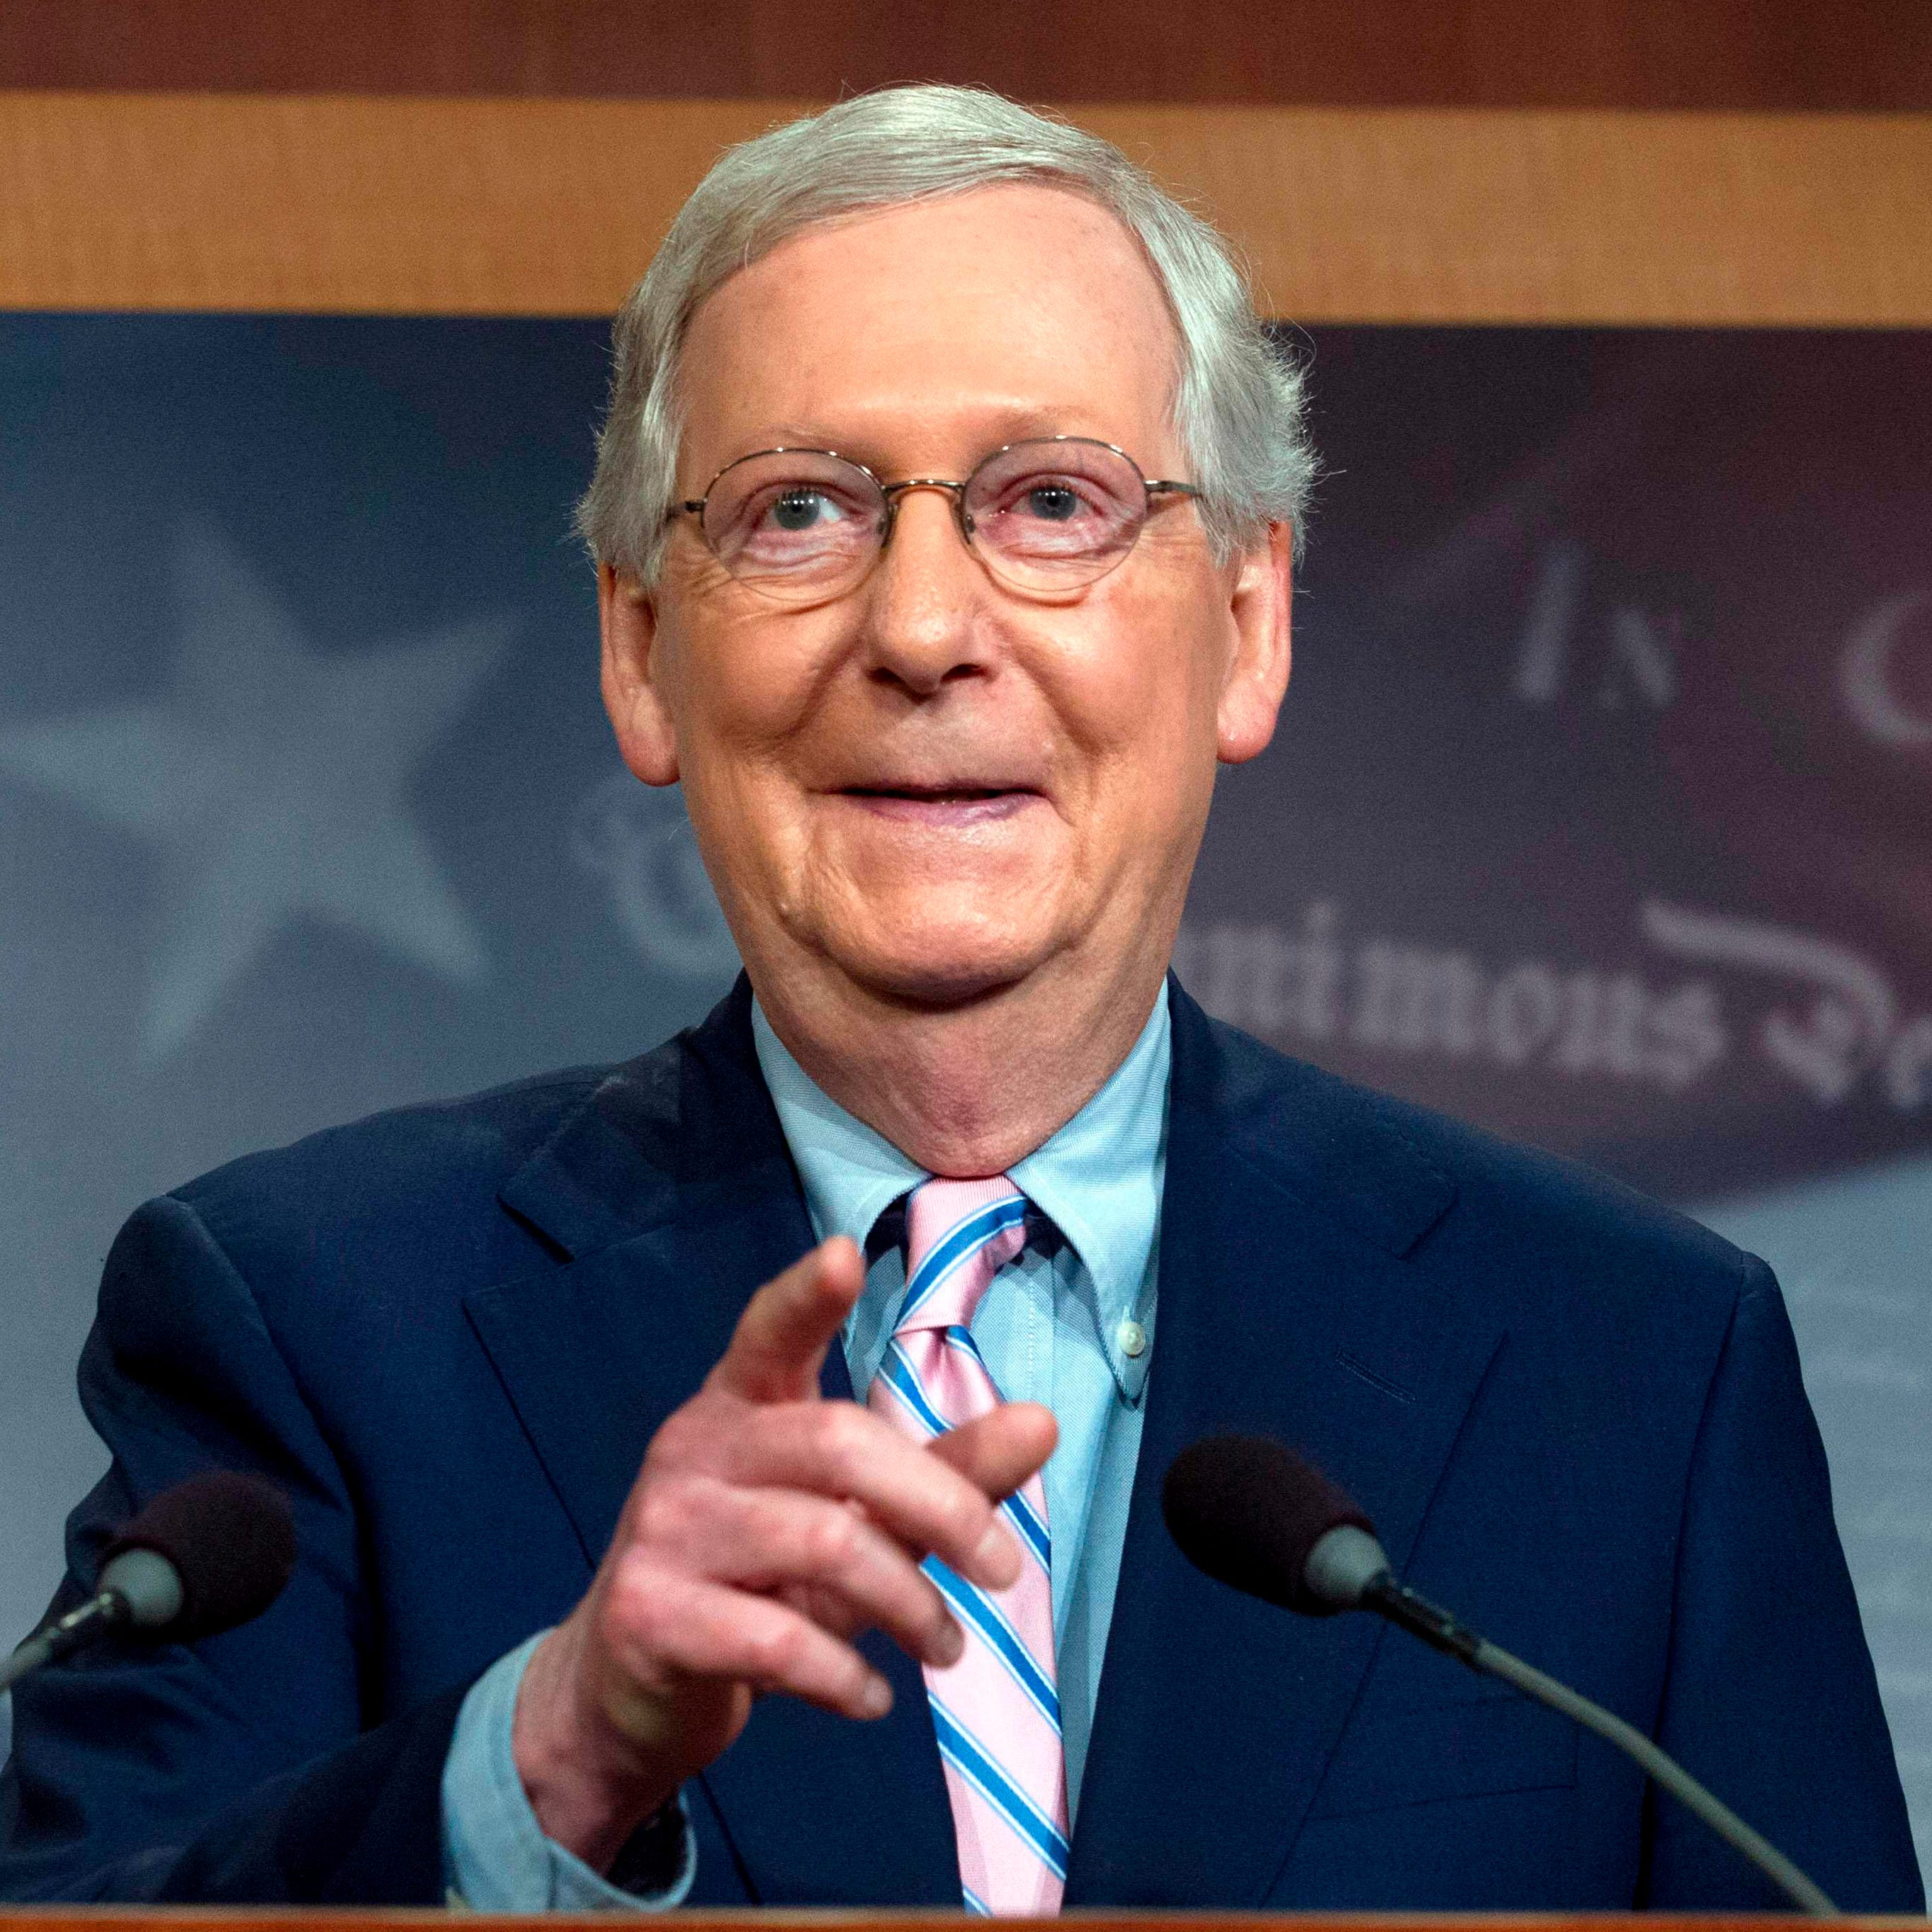 McConnell may have an even larger majority when midterm dust settles